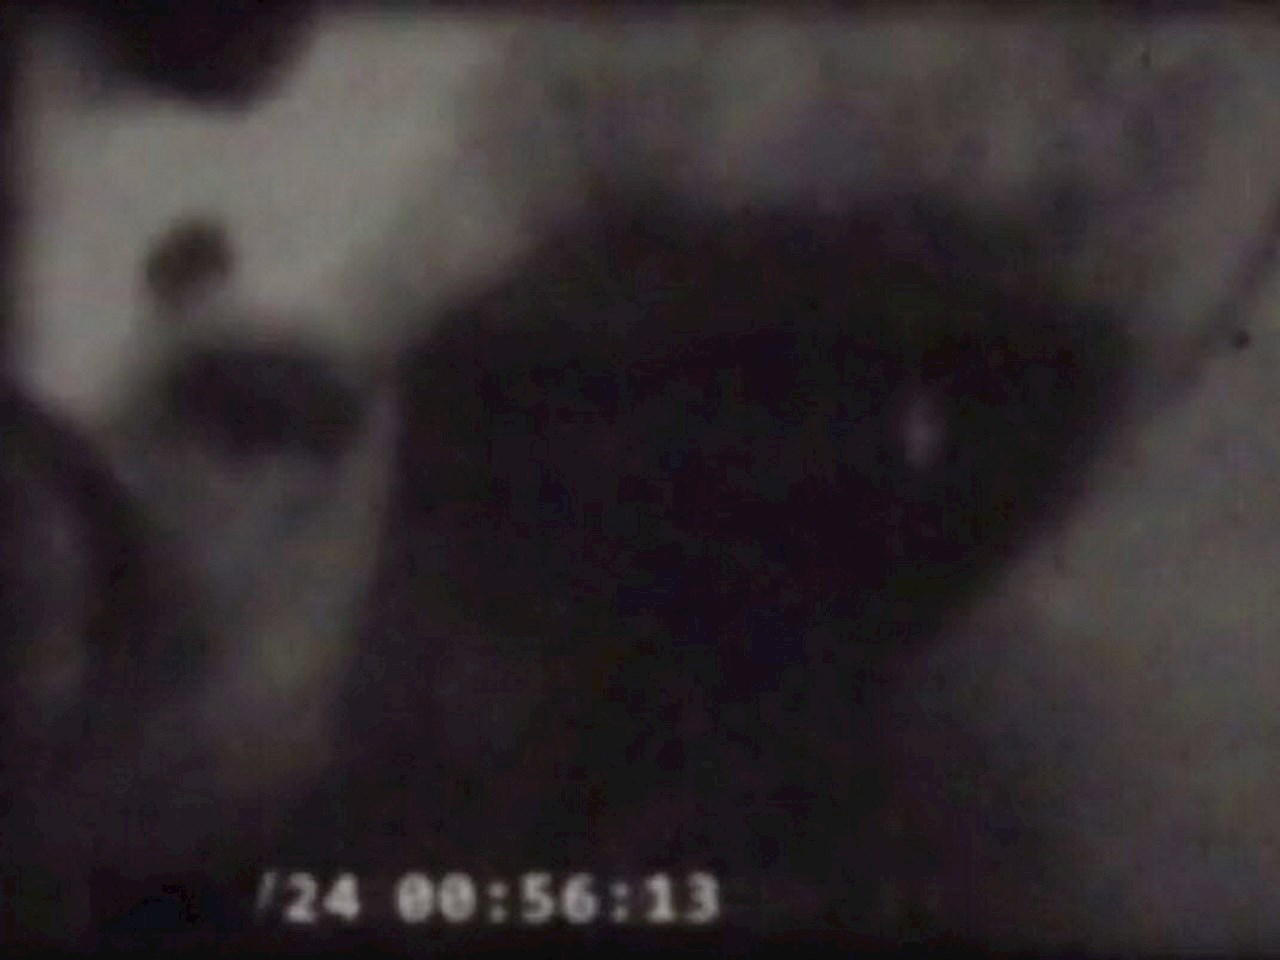 Grey alien found in an unknown UFO crash site